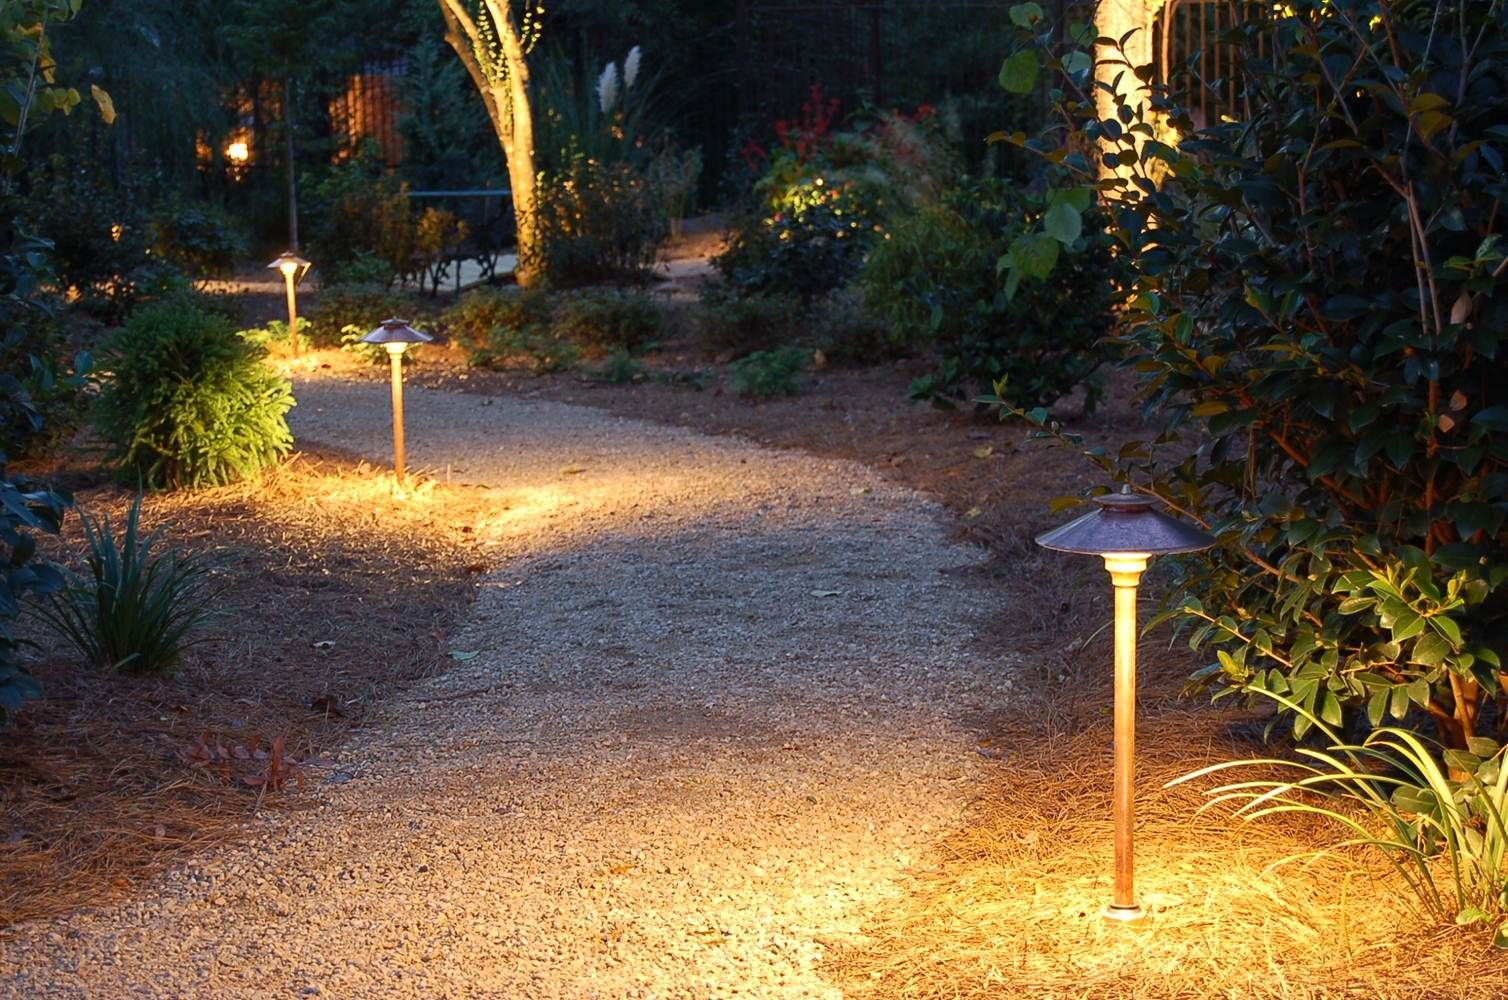 5 Perfect Path Lights For The Home Landscape Lighting Led Landscape Lighting Landscape Lighting Transformer